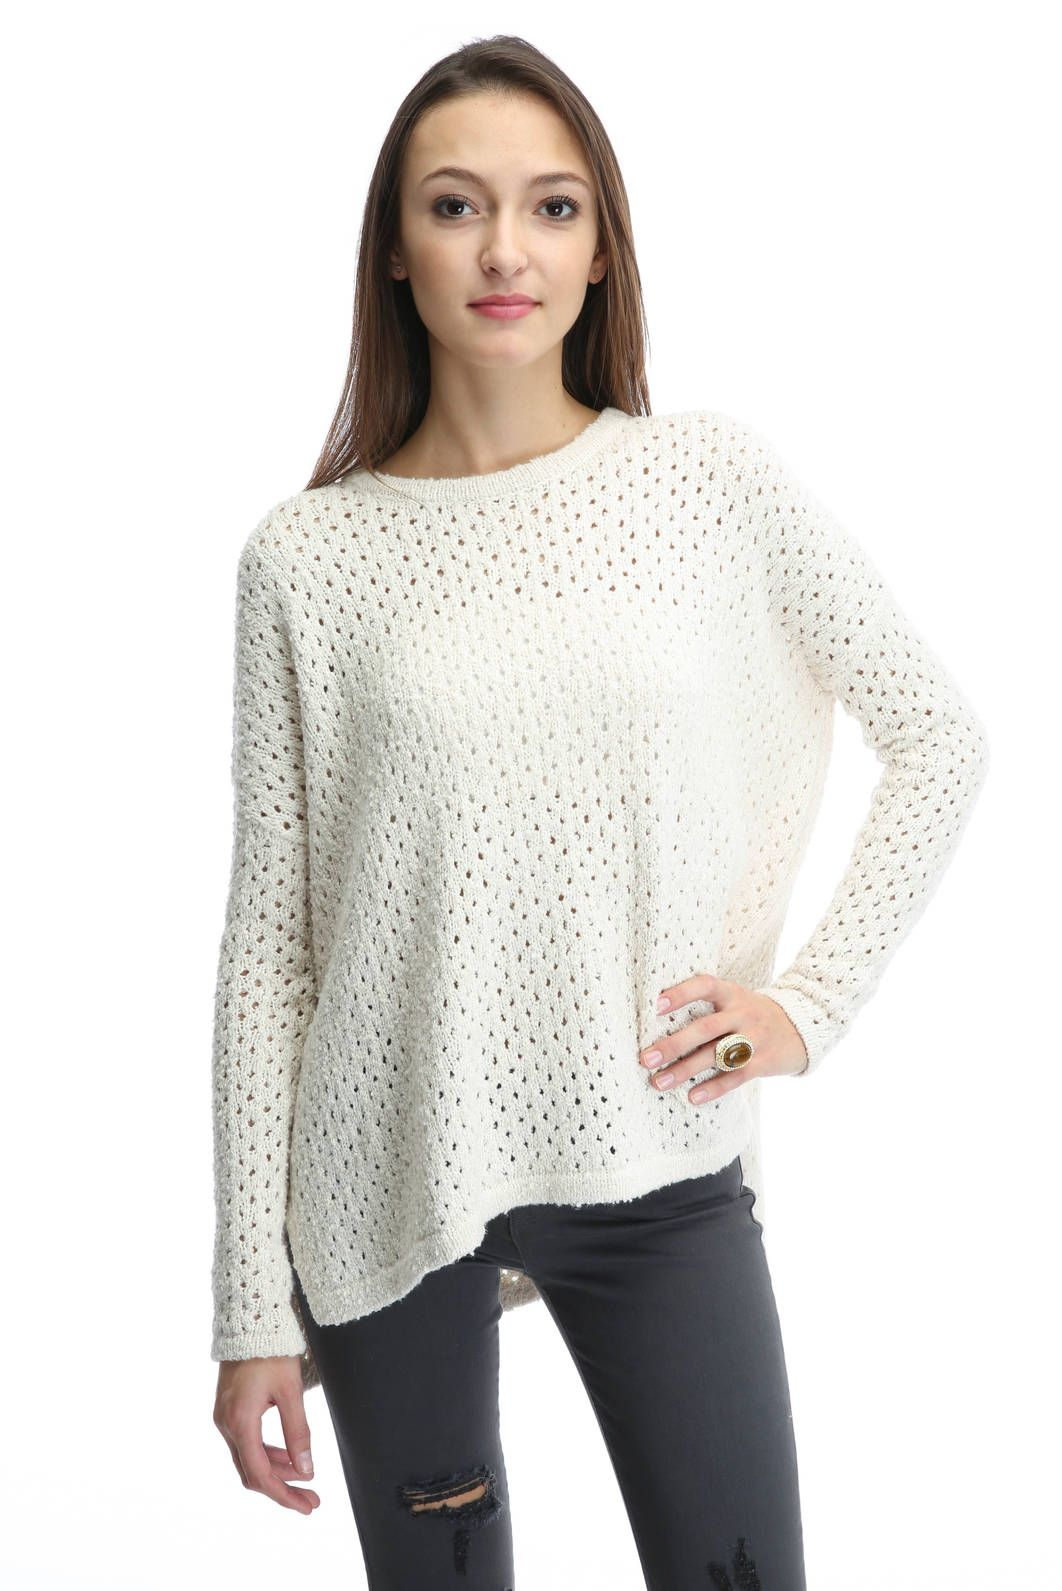 Neely Ema Oversized Perforated Pullover Sweater in IVORY | Jewelry ...